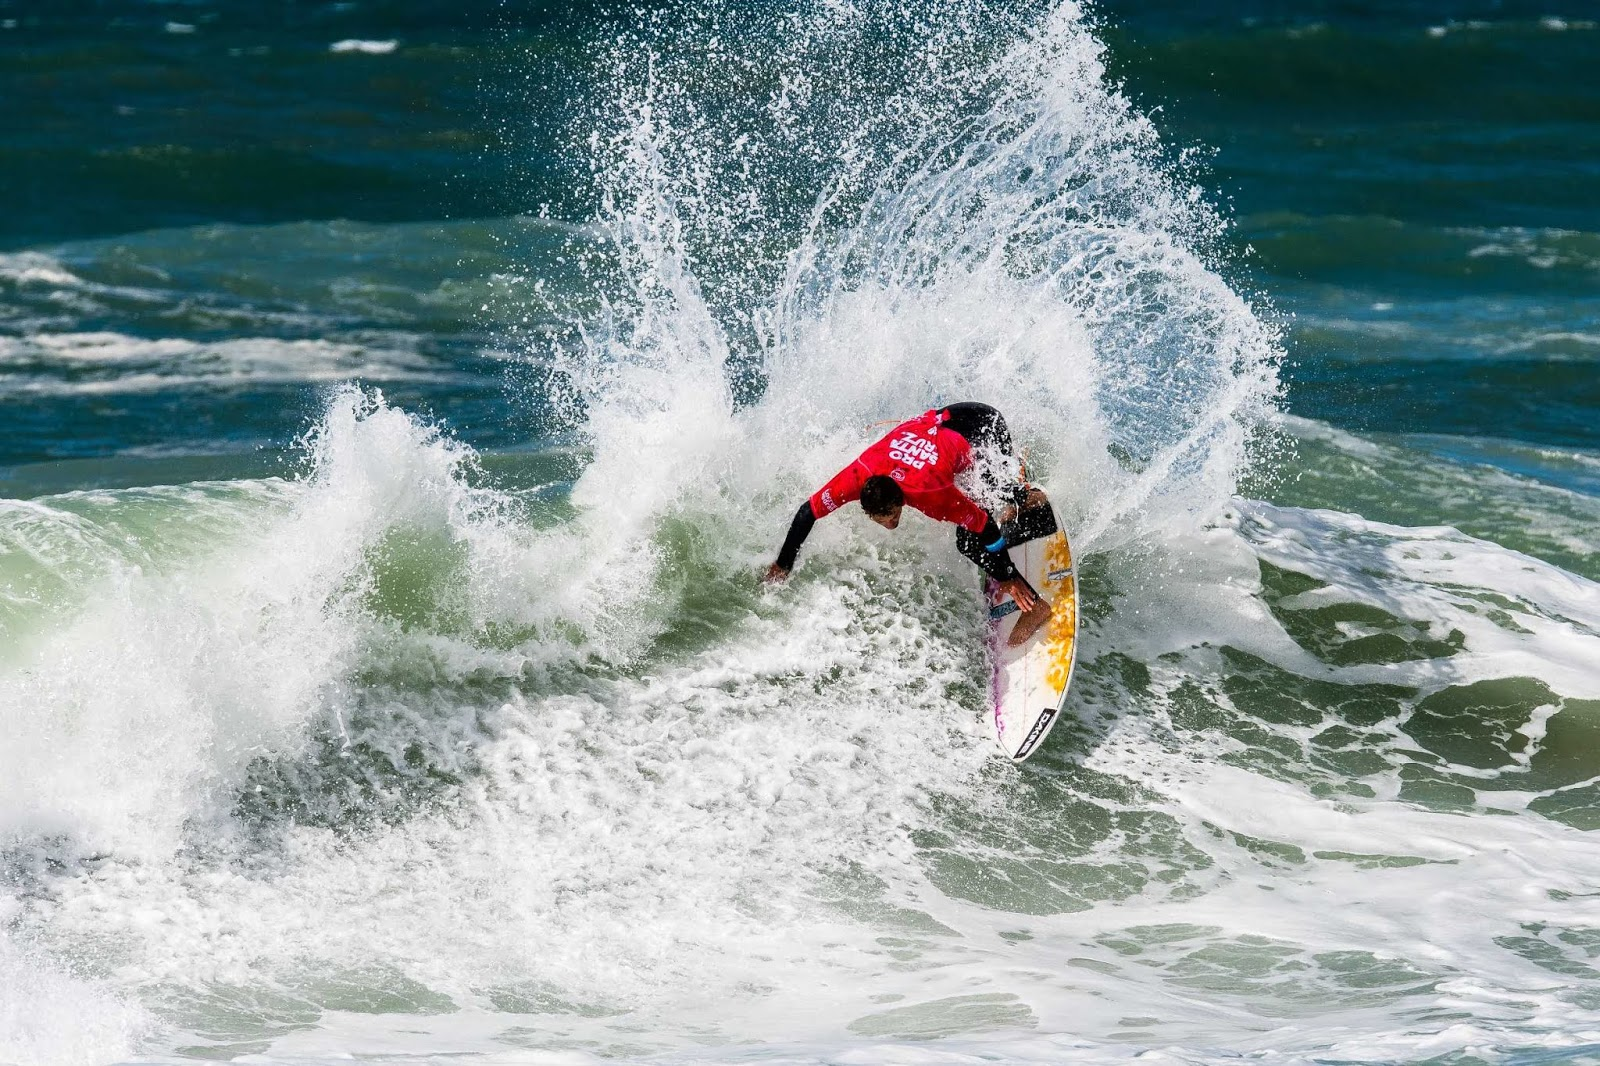 2019 Pro Santa Cruz Highlights Santa Cruz Continues to Deliver Tricky Surf